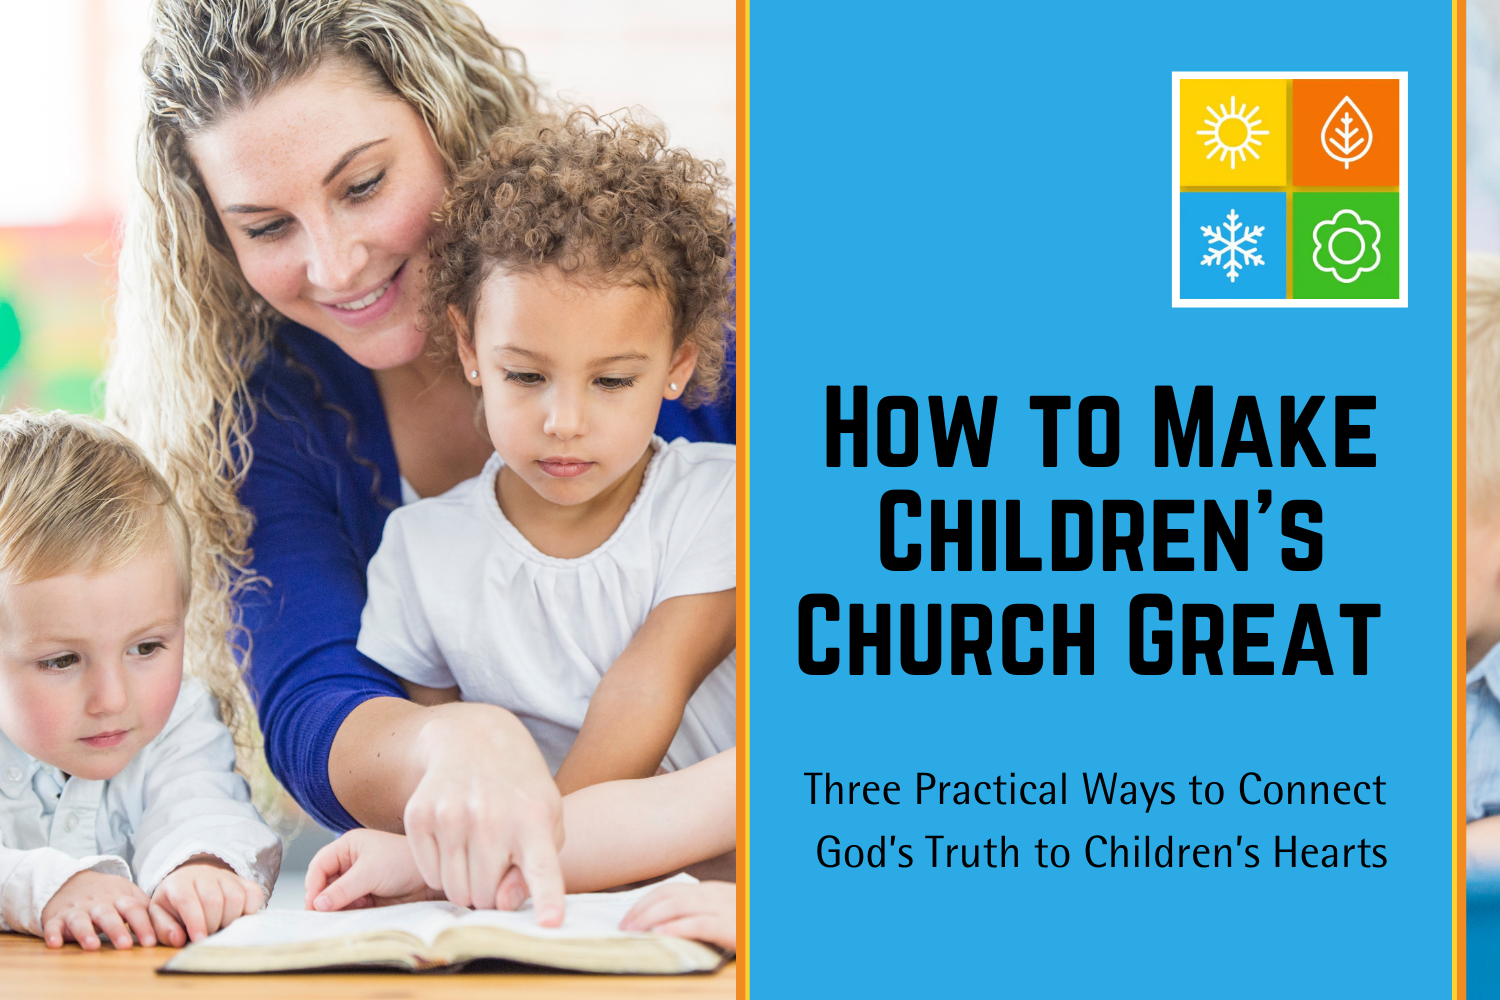 How to Make Children's Church Great